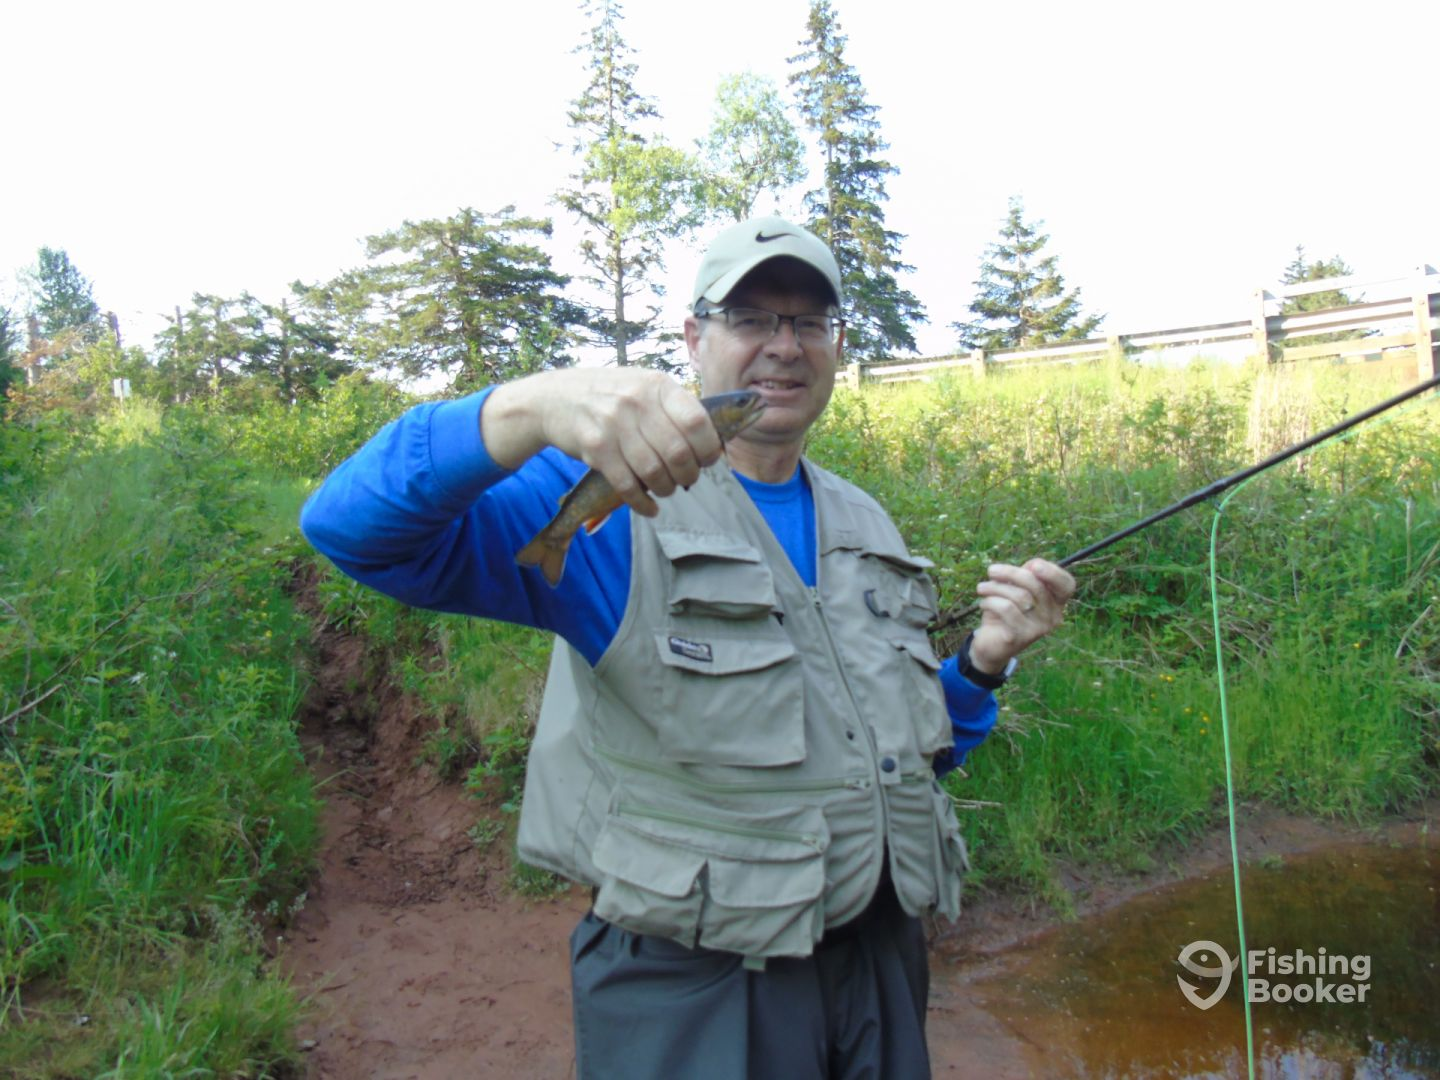 This was his first brook trout.